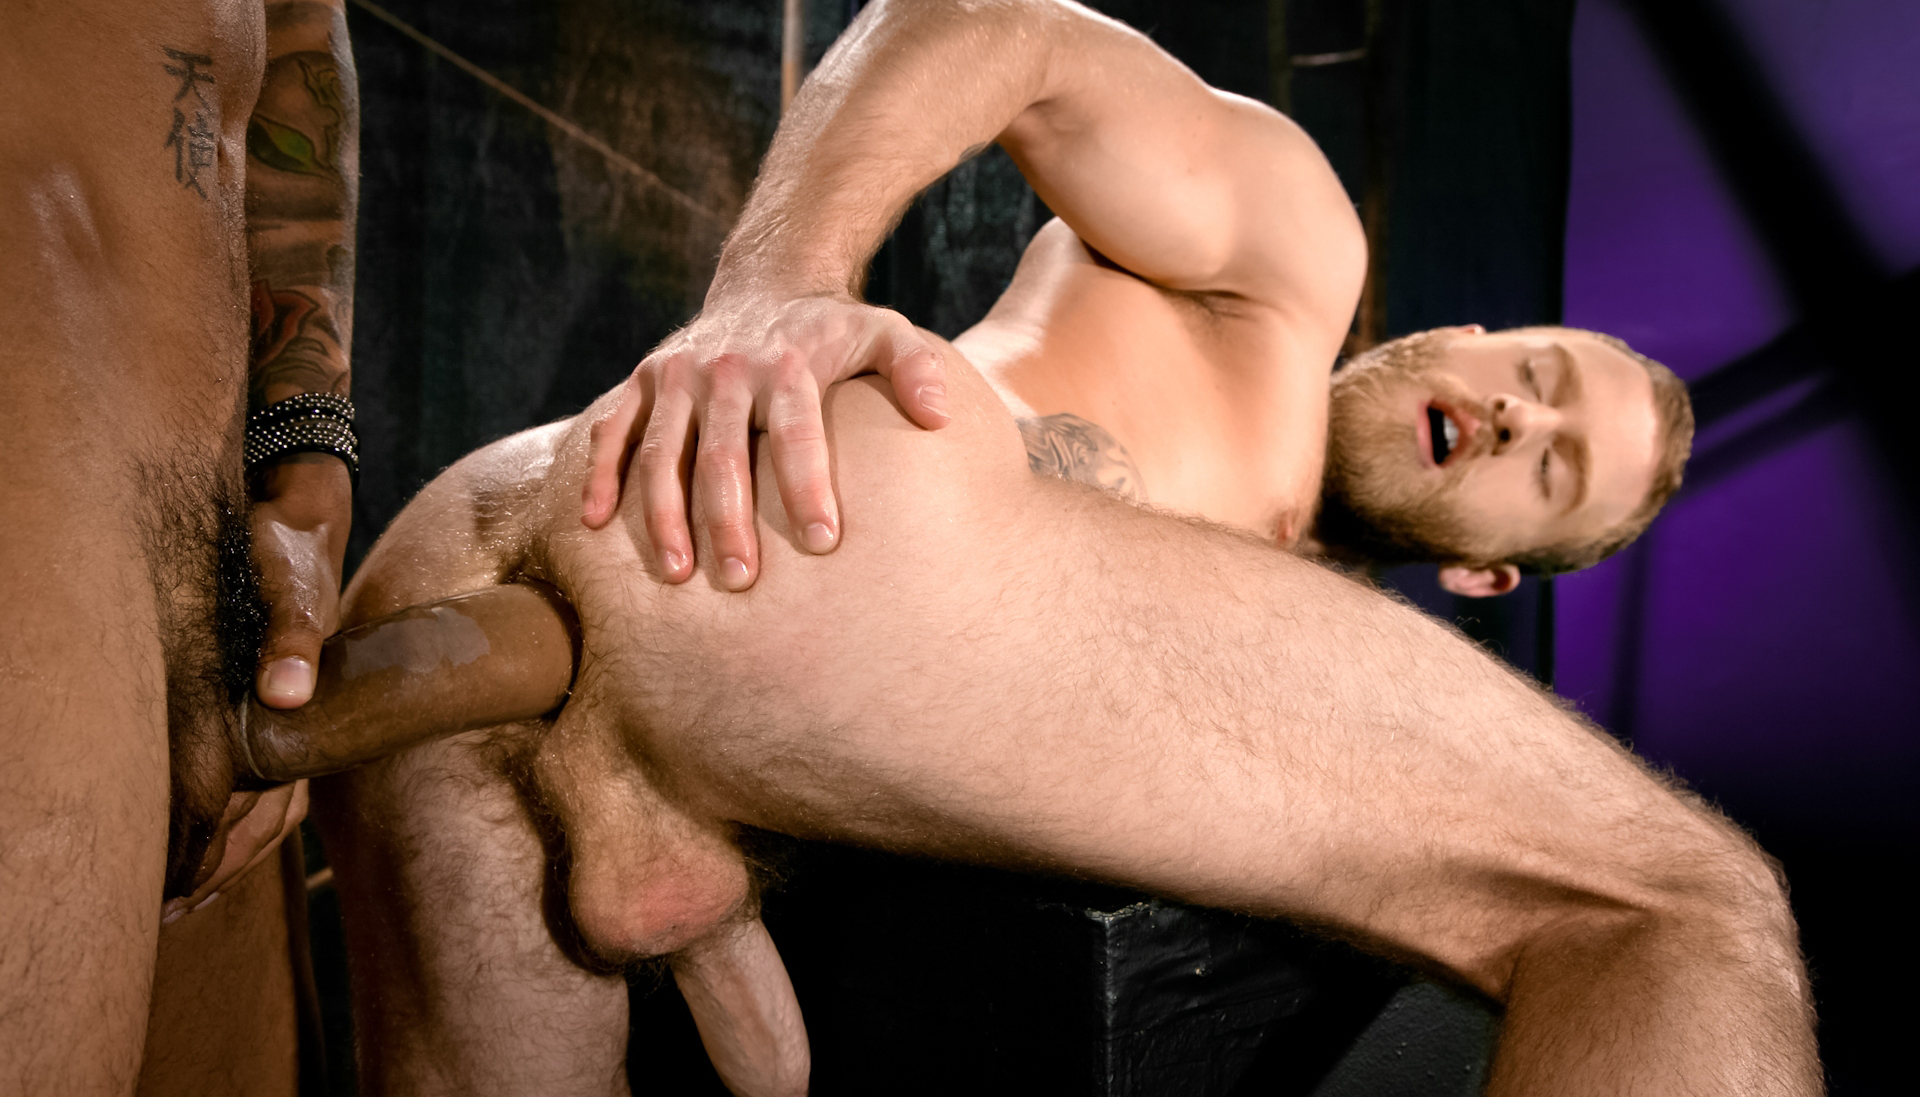 A big dick gay man fucking first time 7